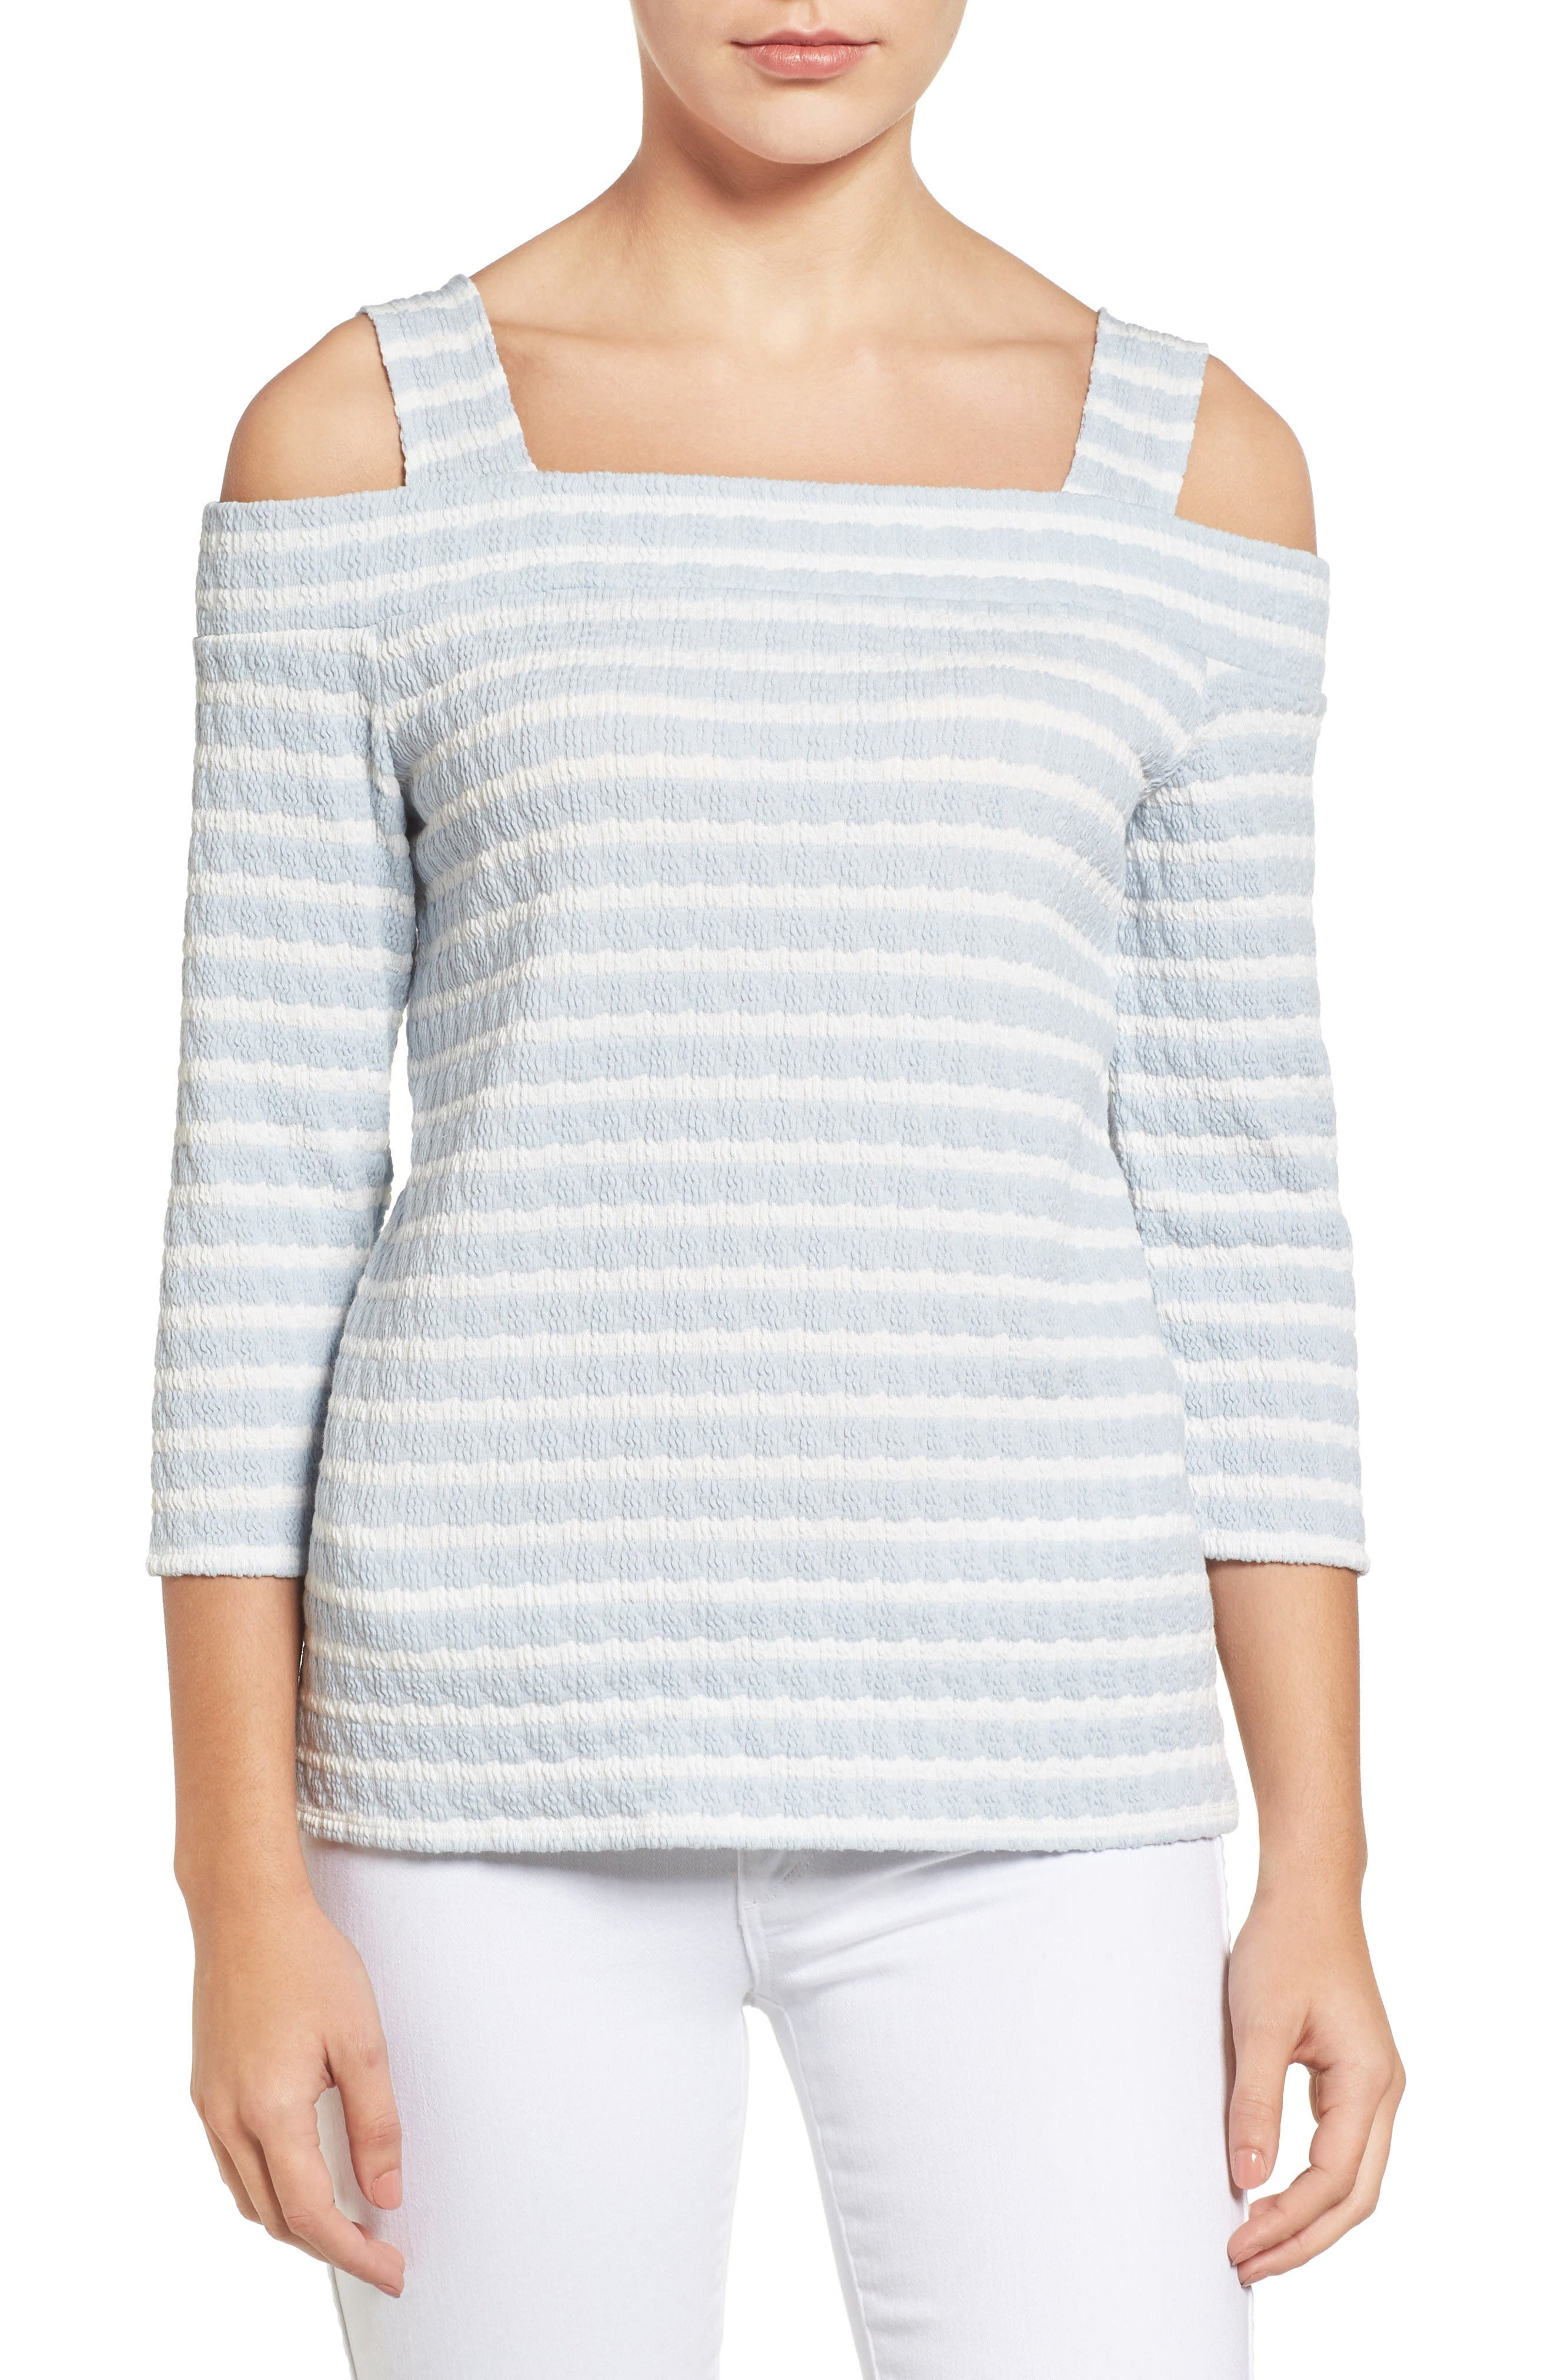 Alternate Image 1 Selected - KUT from the Kloth Fridi Texture Stripe Cold Shoulder Top